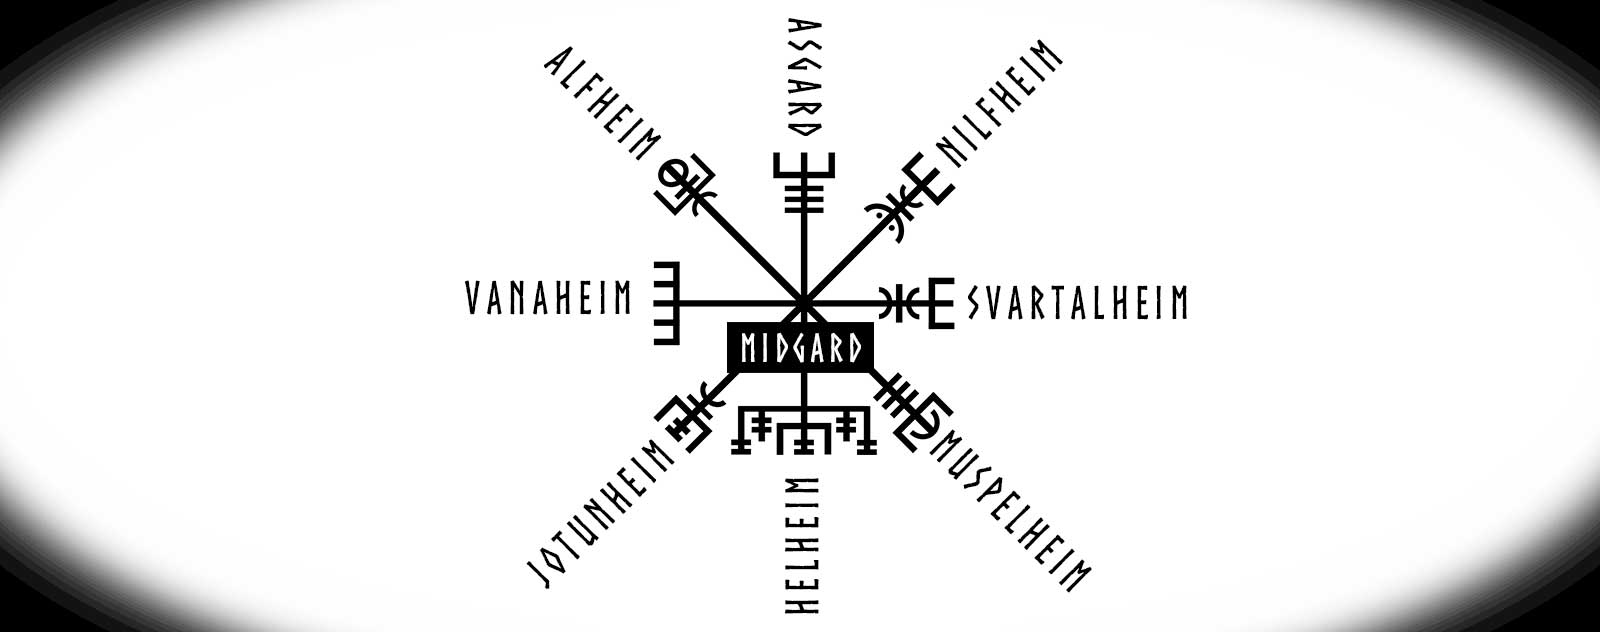 Signification 8 branches vegvisir